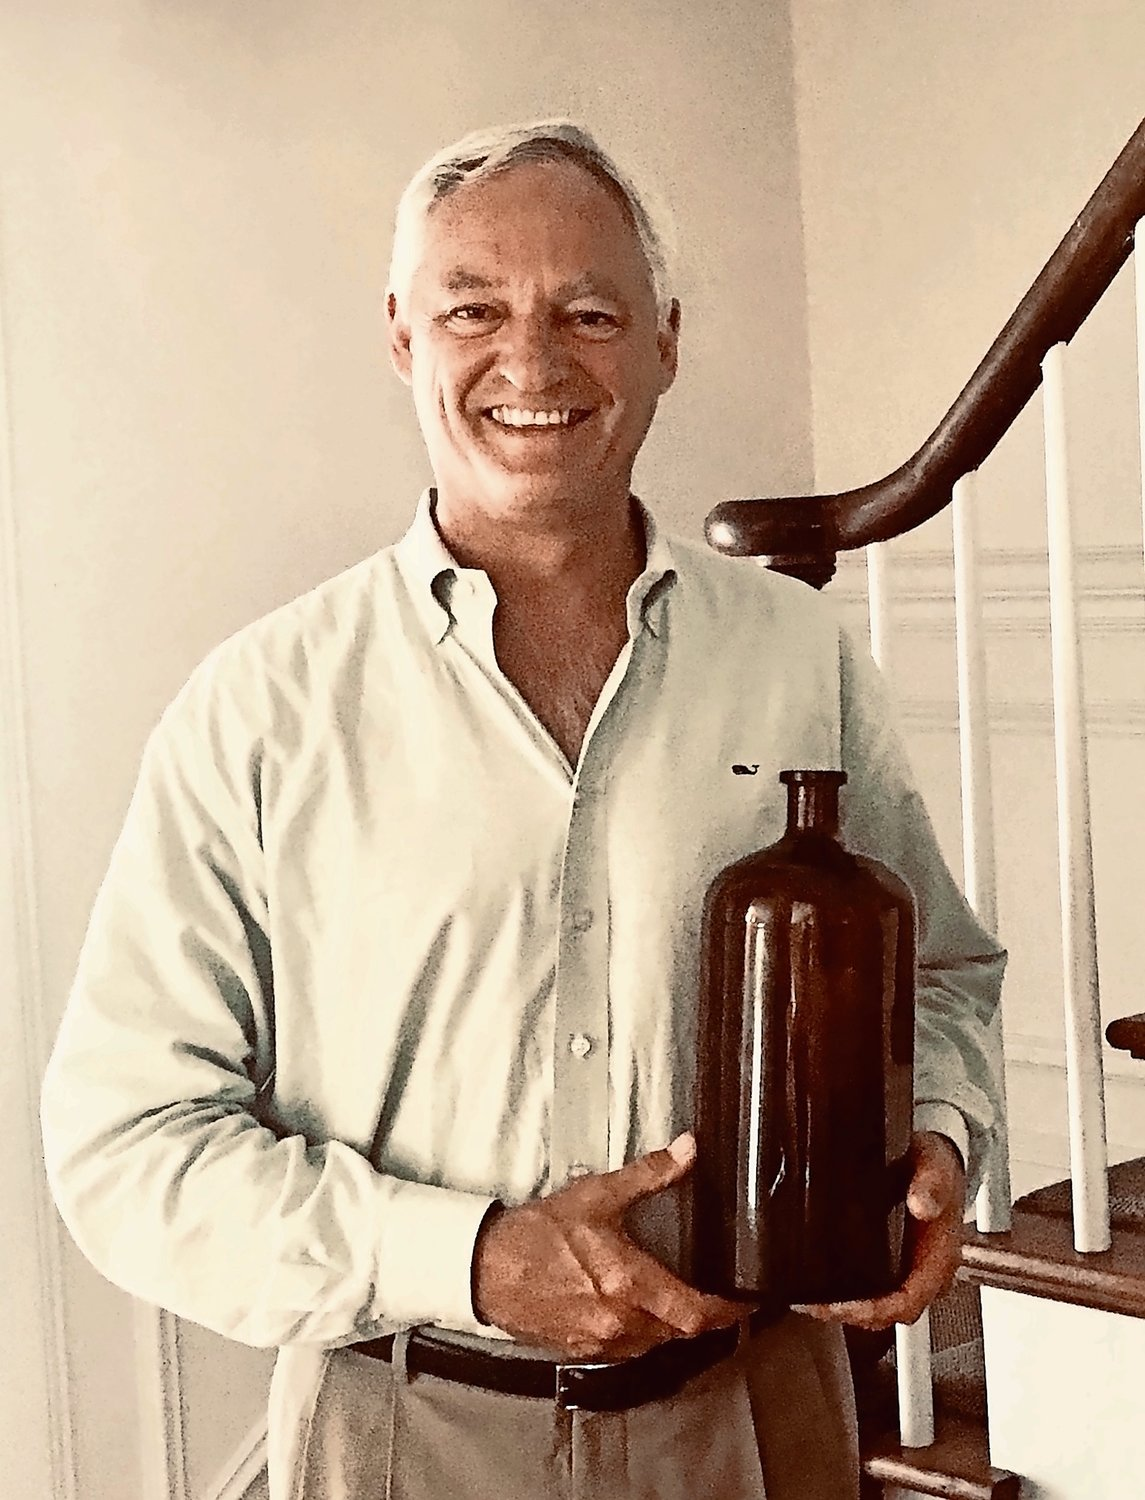 Tim Lee, who specializes in historic restoration and is one of the new owners of Snouder's, found old medicine bottles when cleaning up the building.